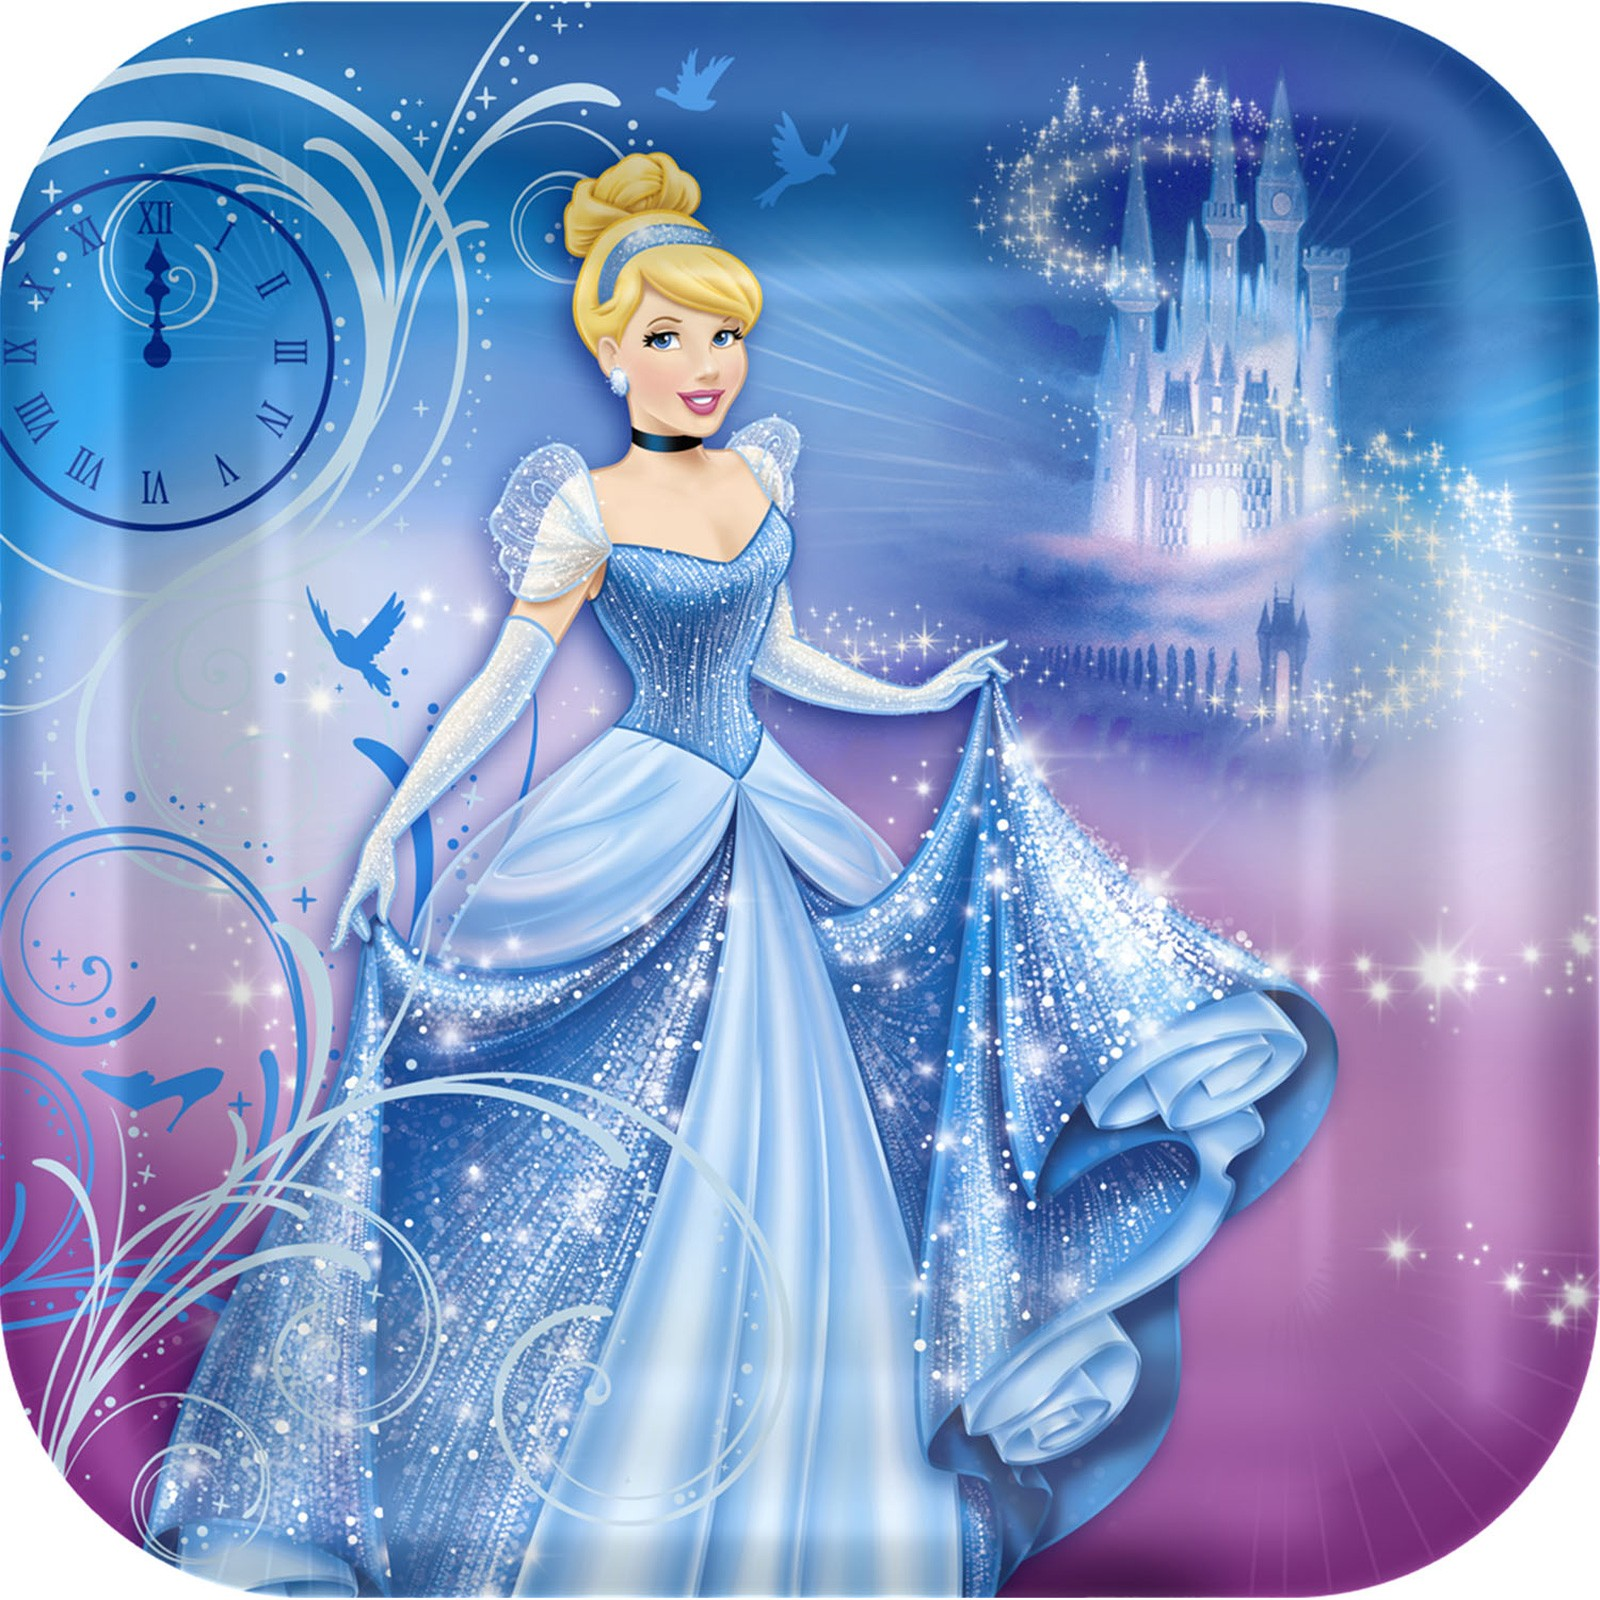 Cinderella Party Supplies | BirthdayExpress com